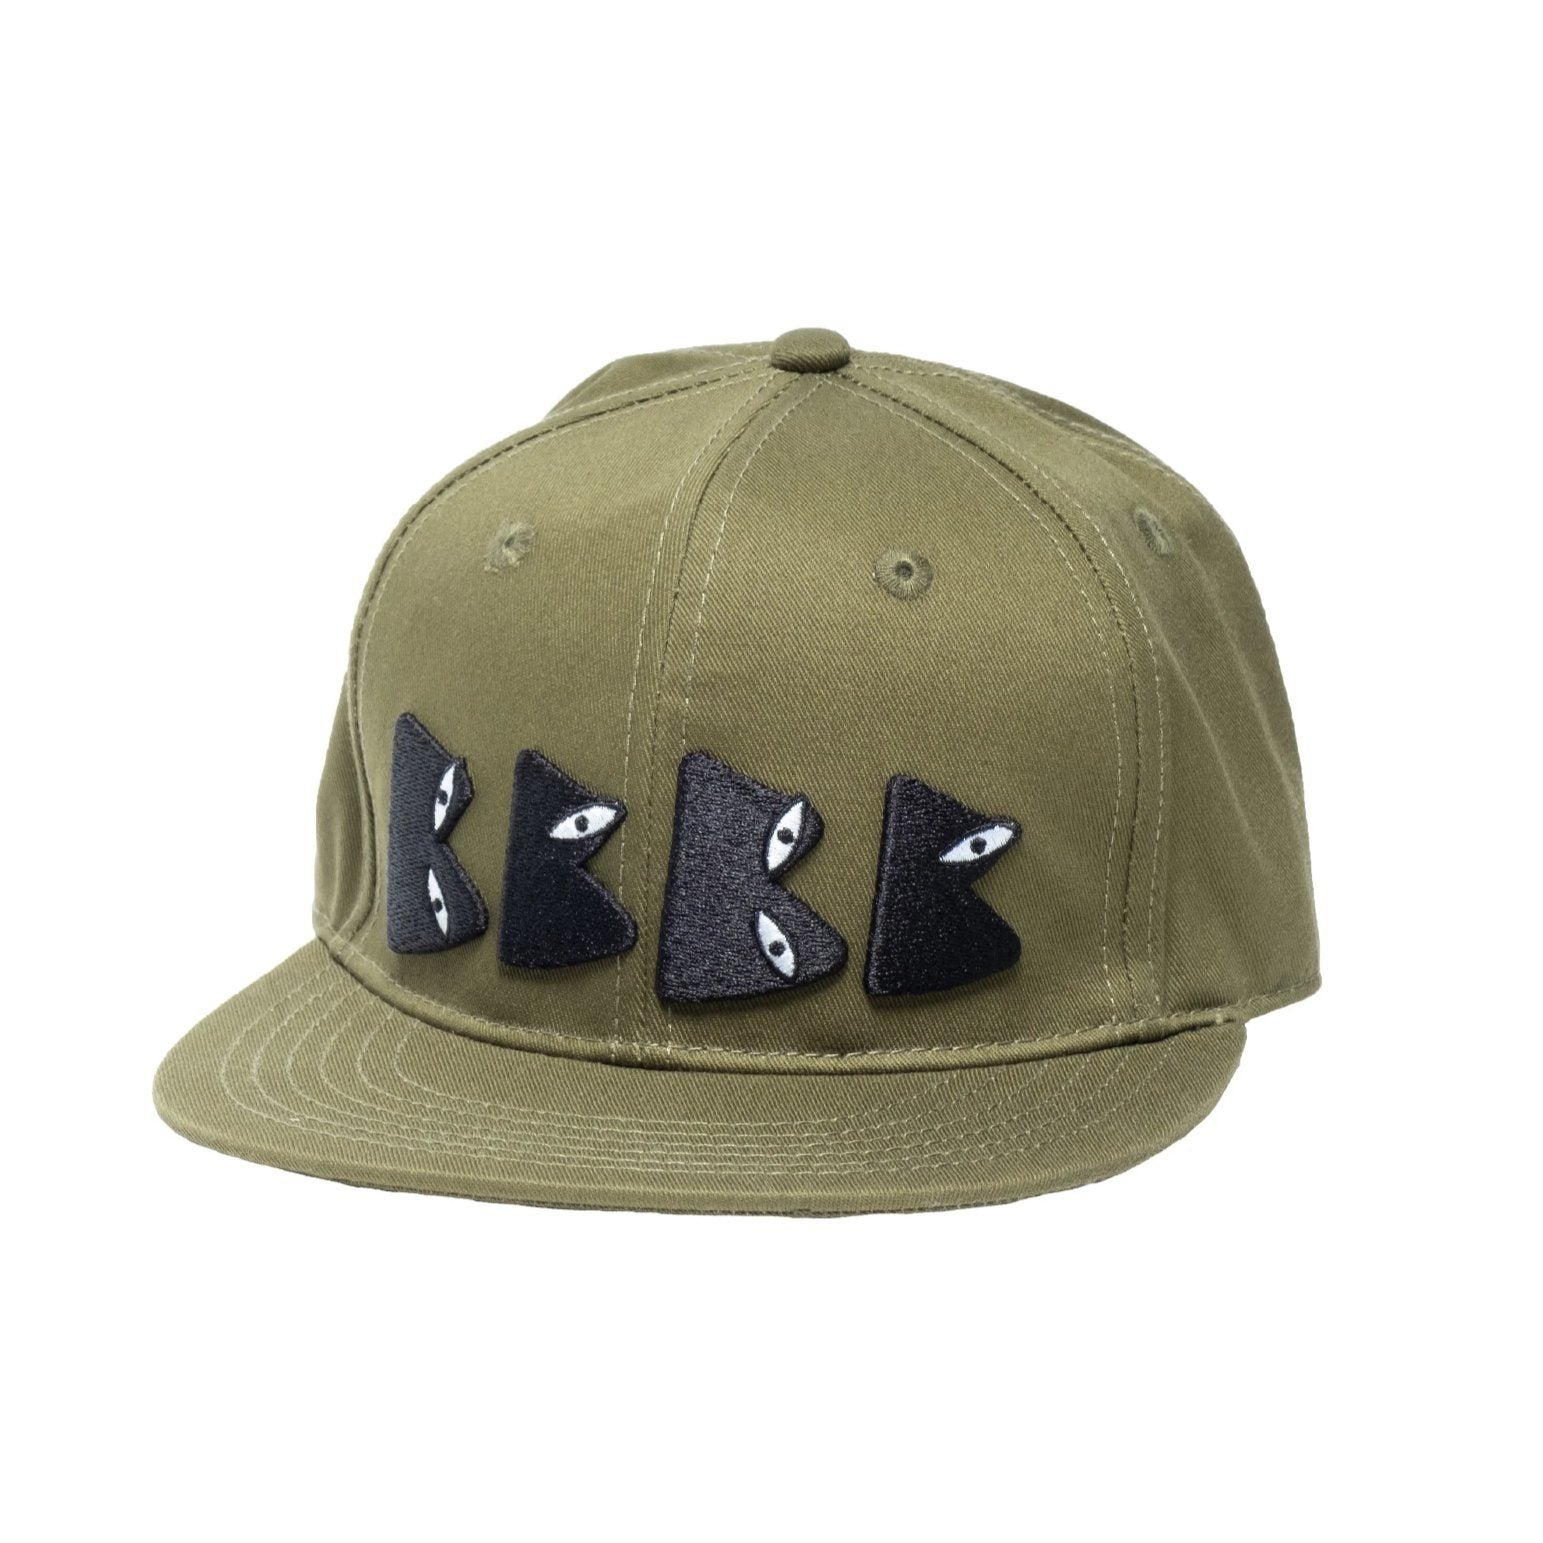 B Eyes Hip Hop Cap